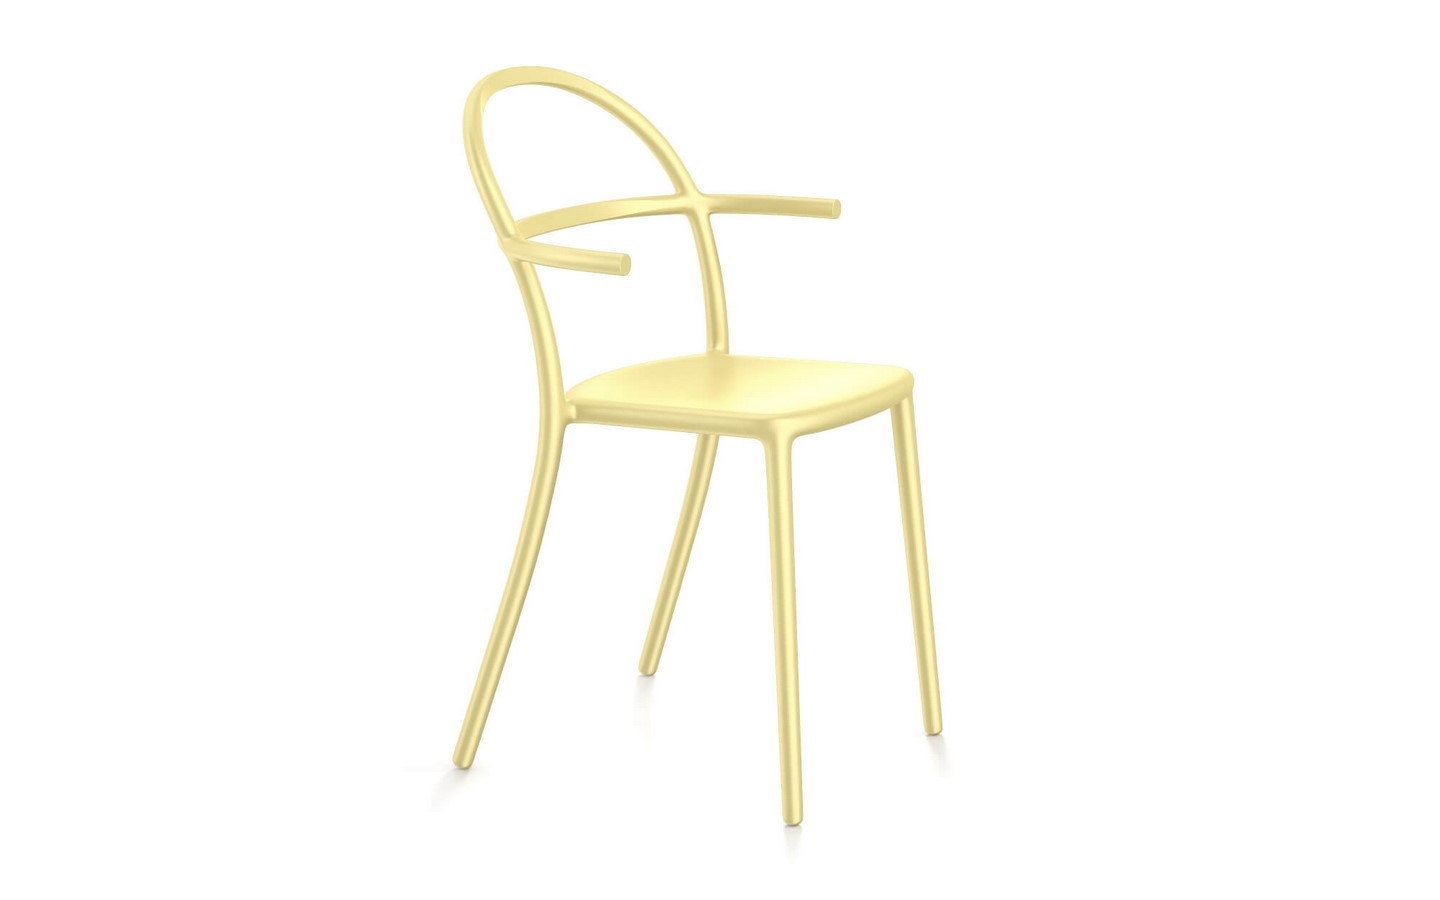 GENERIC.C, was designed by Philippe Starck with A. Maggiar for Kartell - Sheet3